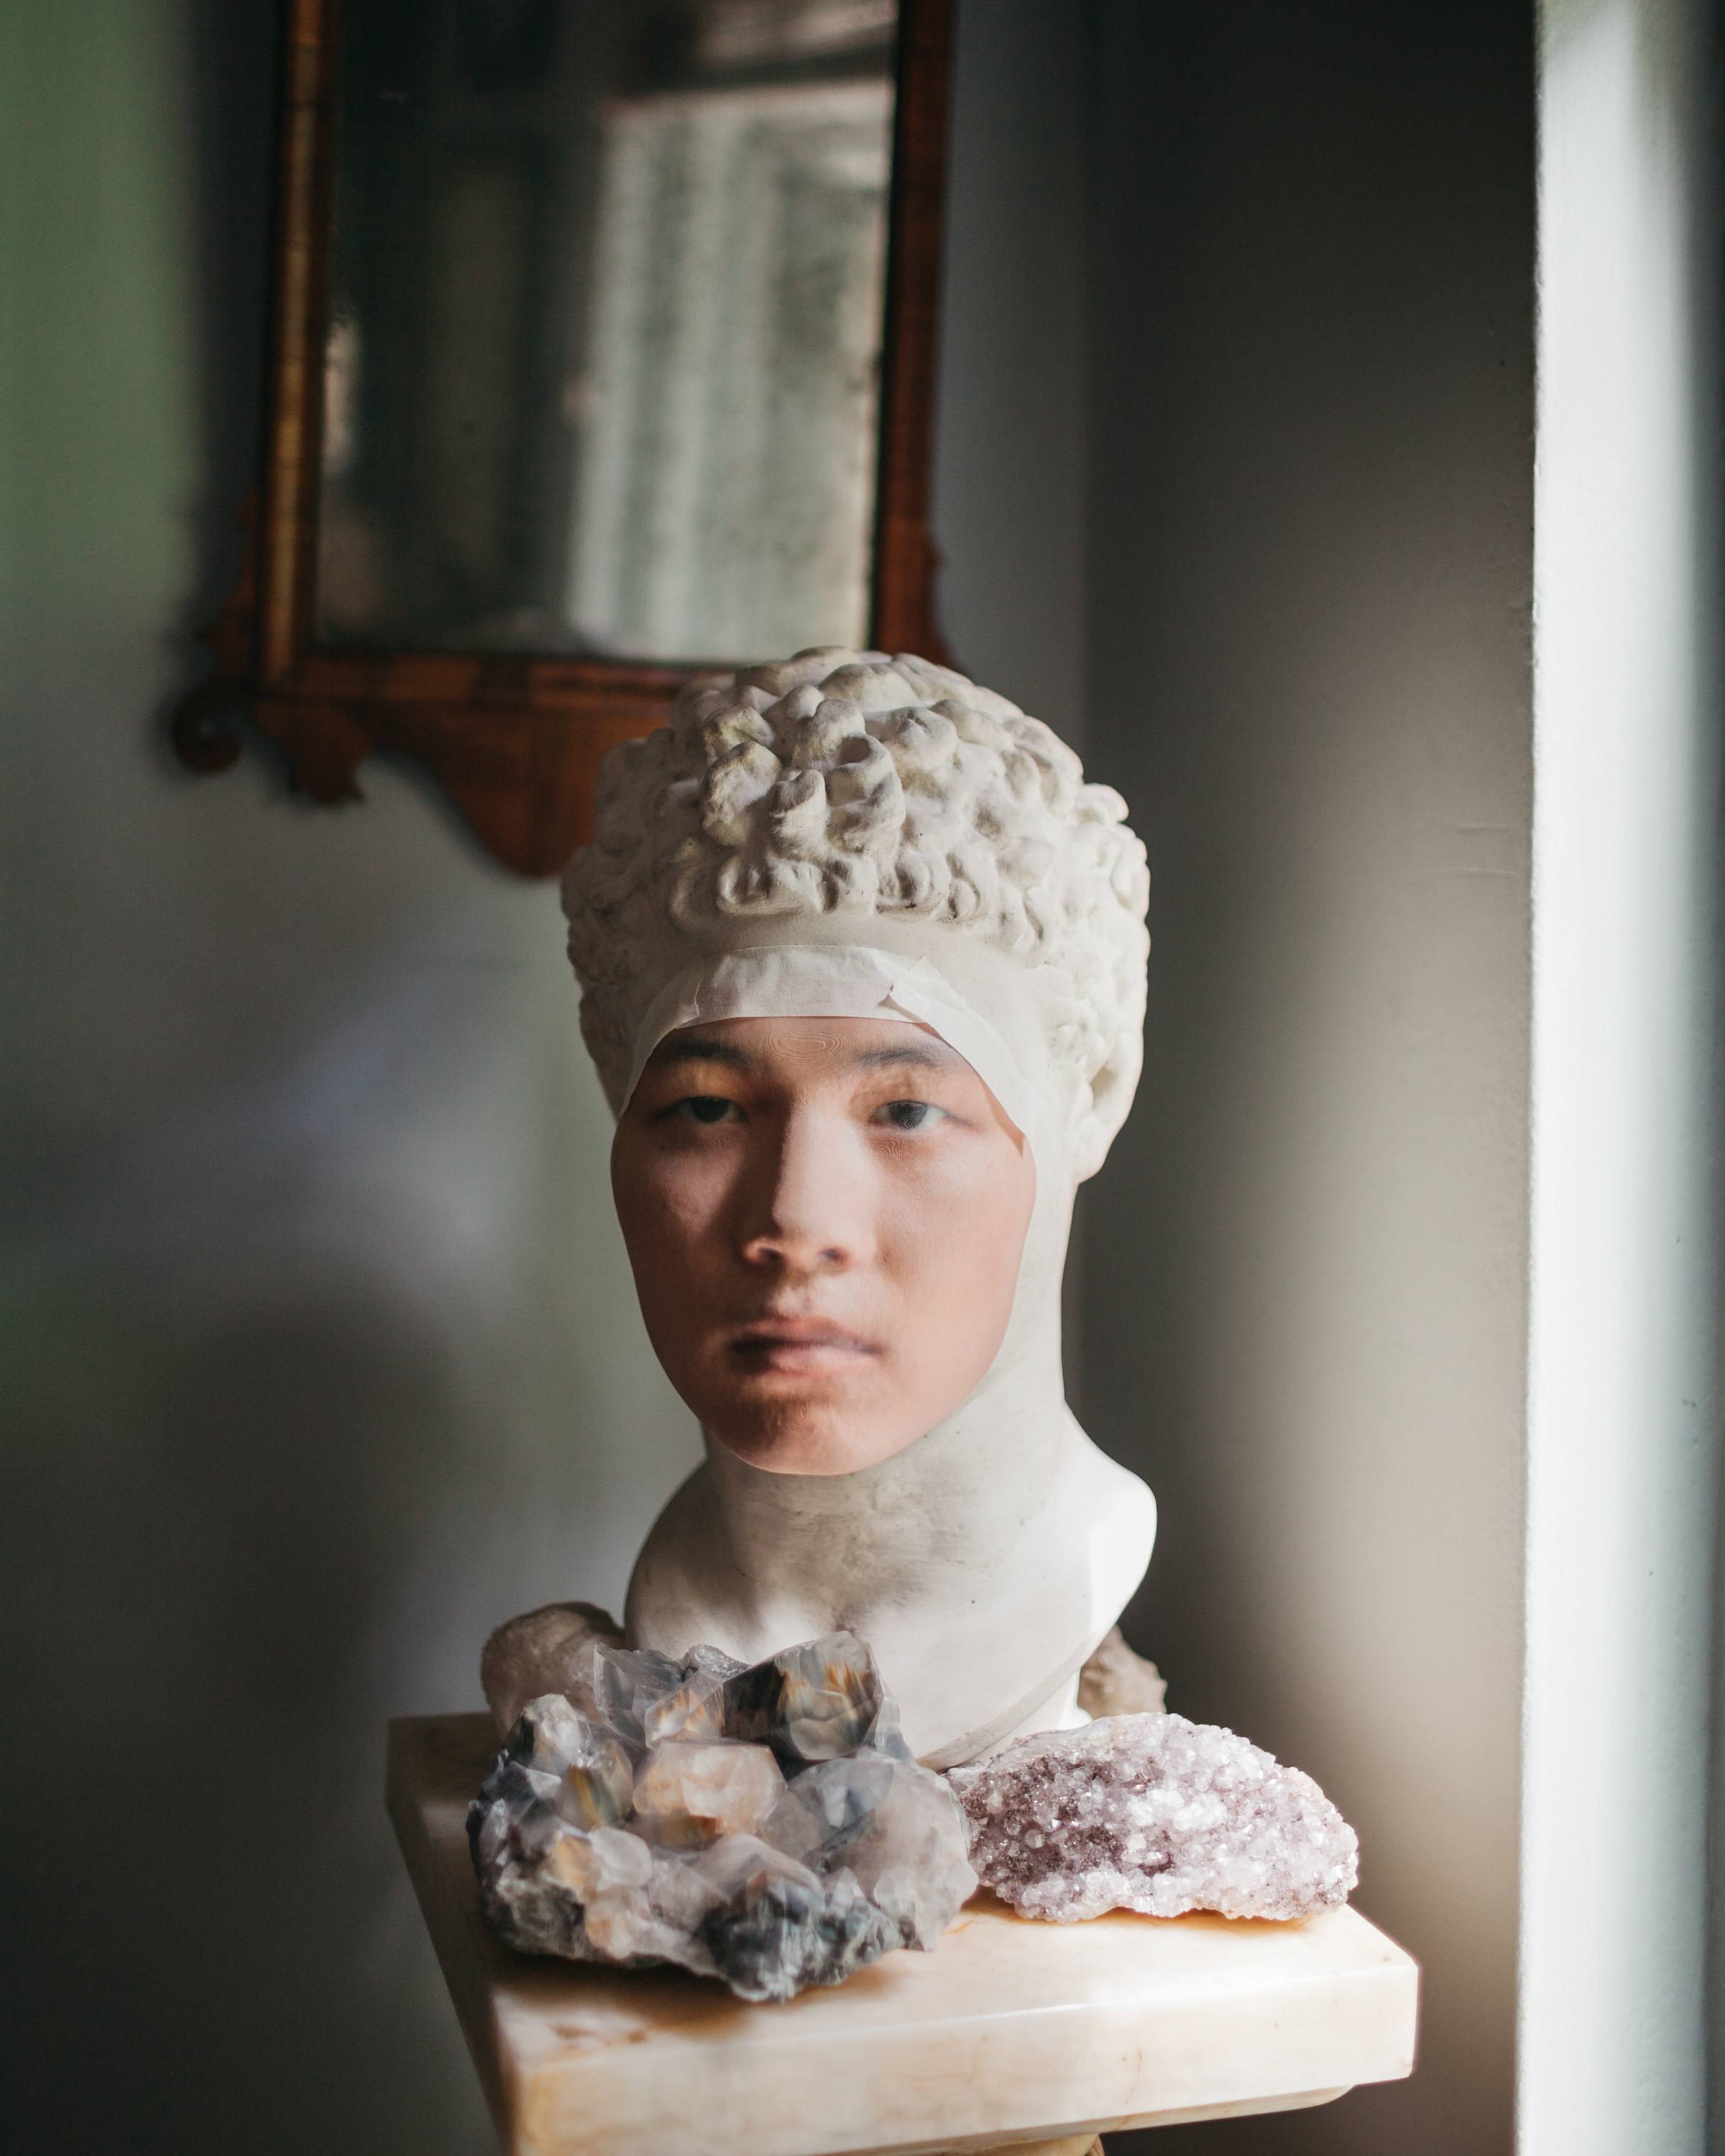 A mans face taped to a bust statue with crystals around it on a pedestal